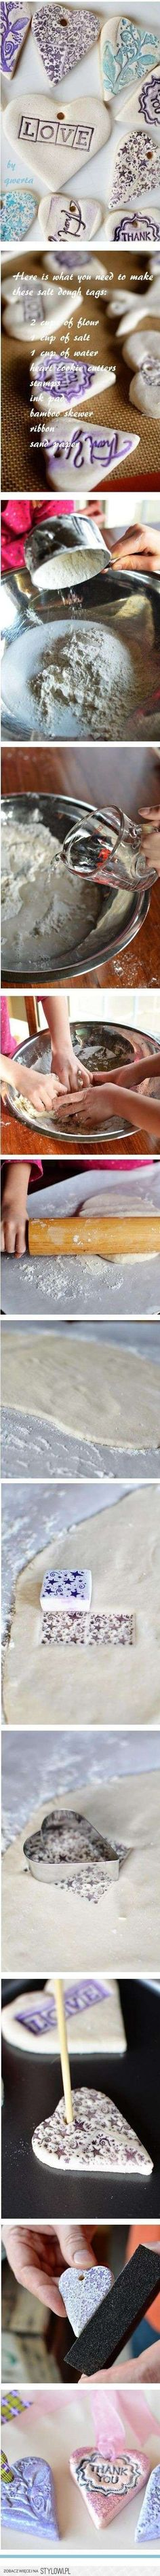 Trolldeig 14 Random DIY Ideas Which Can Make Your Life Easier - Stamped salt dough Diy Projects To Try, Clay Crafts, Crafts To Make, Fun Crafts, Crafts For Kids, Craft Projects, Arts And Crafts, Craft Gifts, Diy Gifts